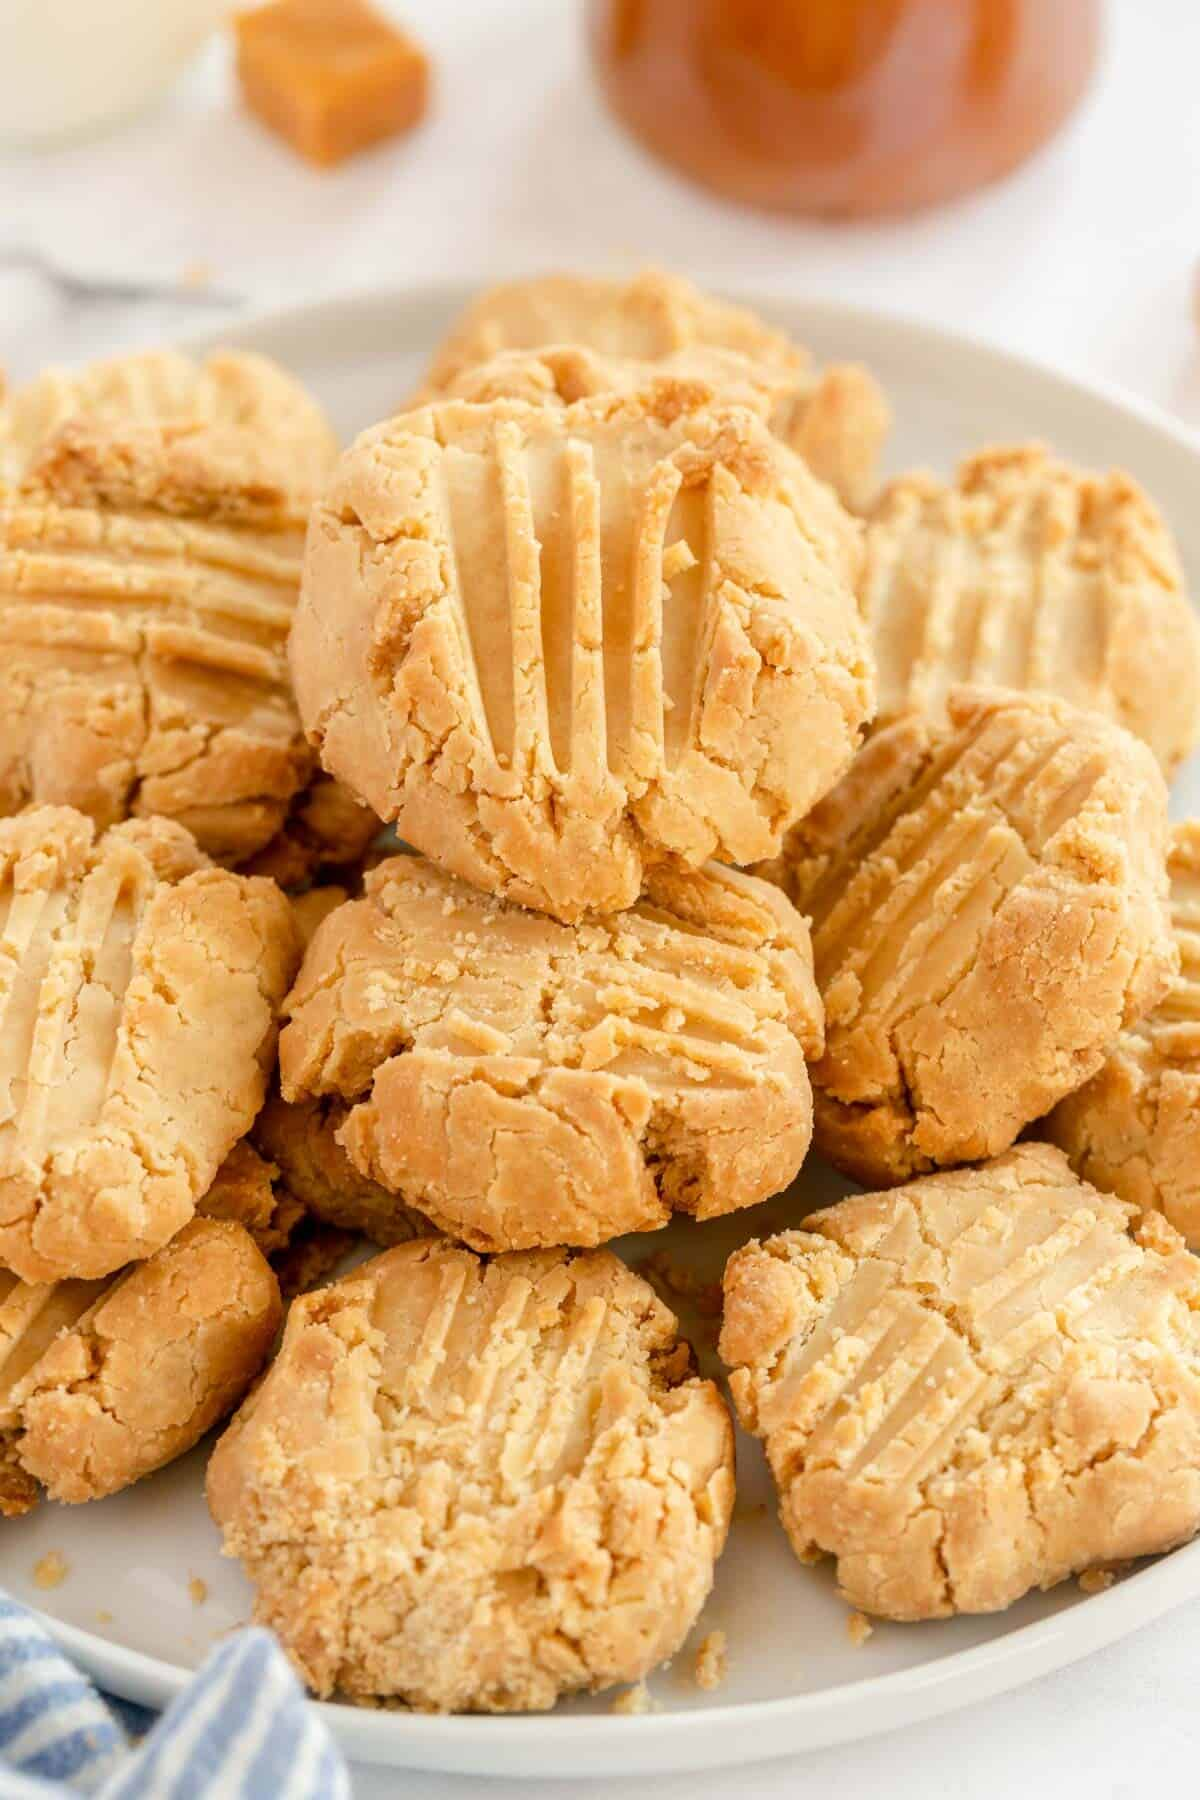 caramel cookies on a plate